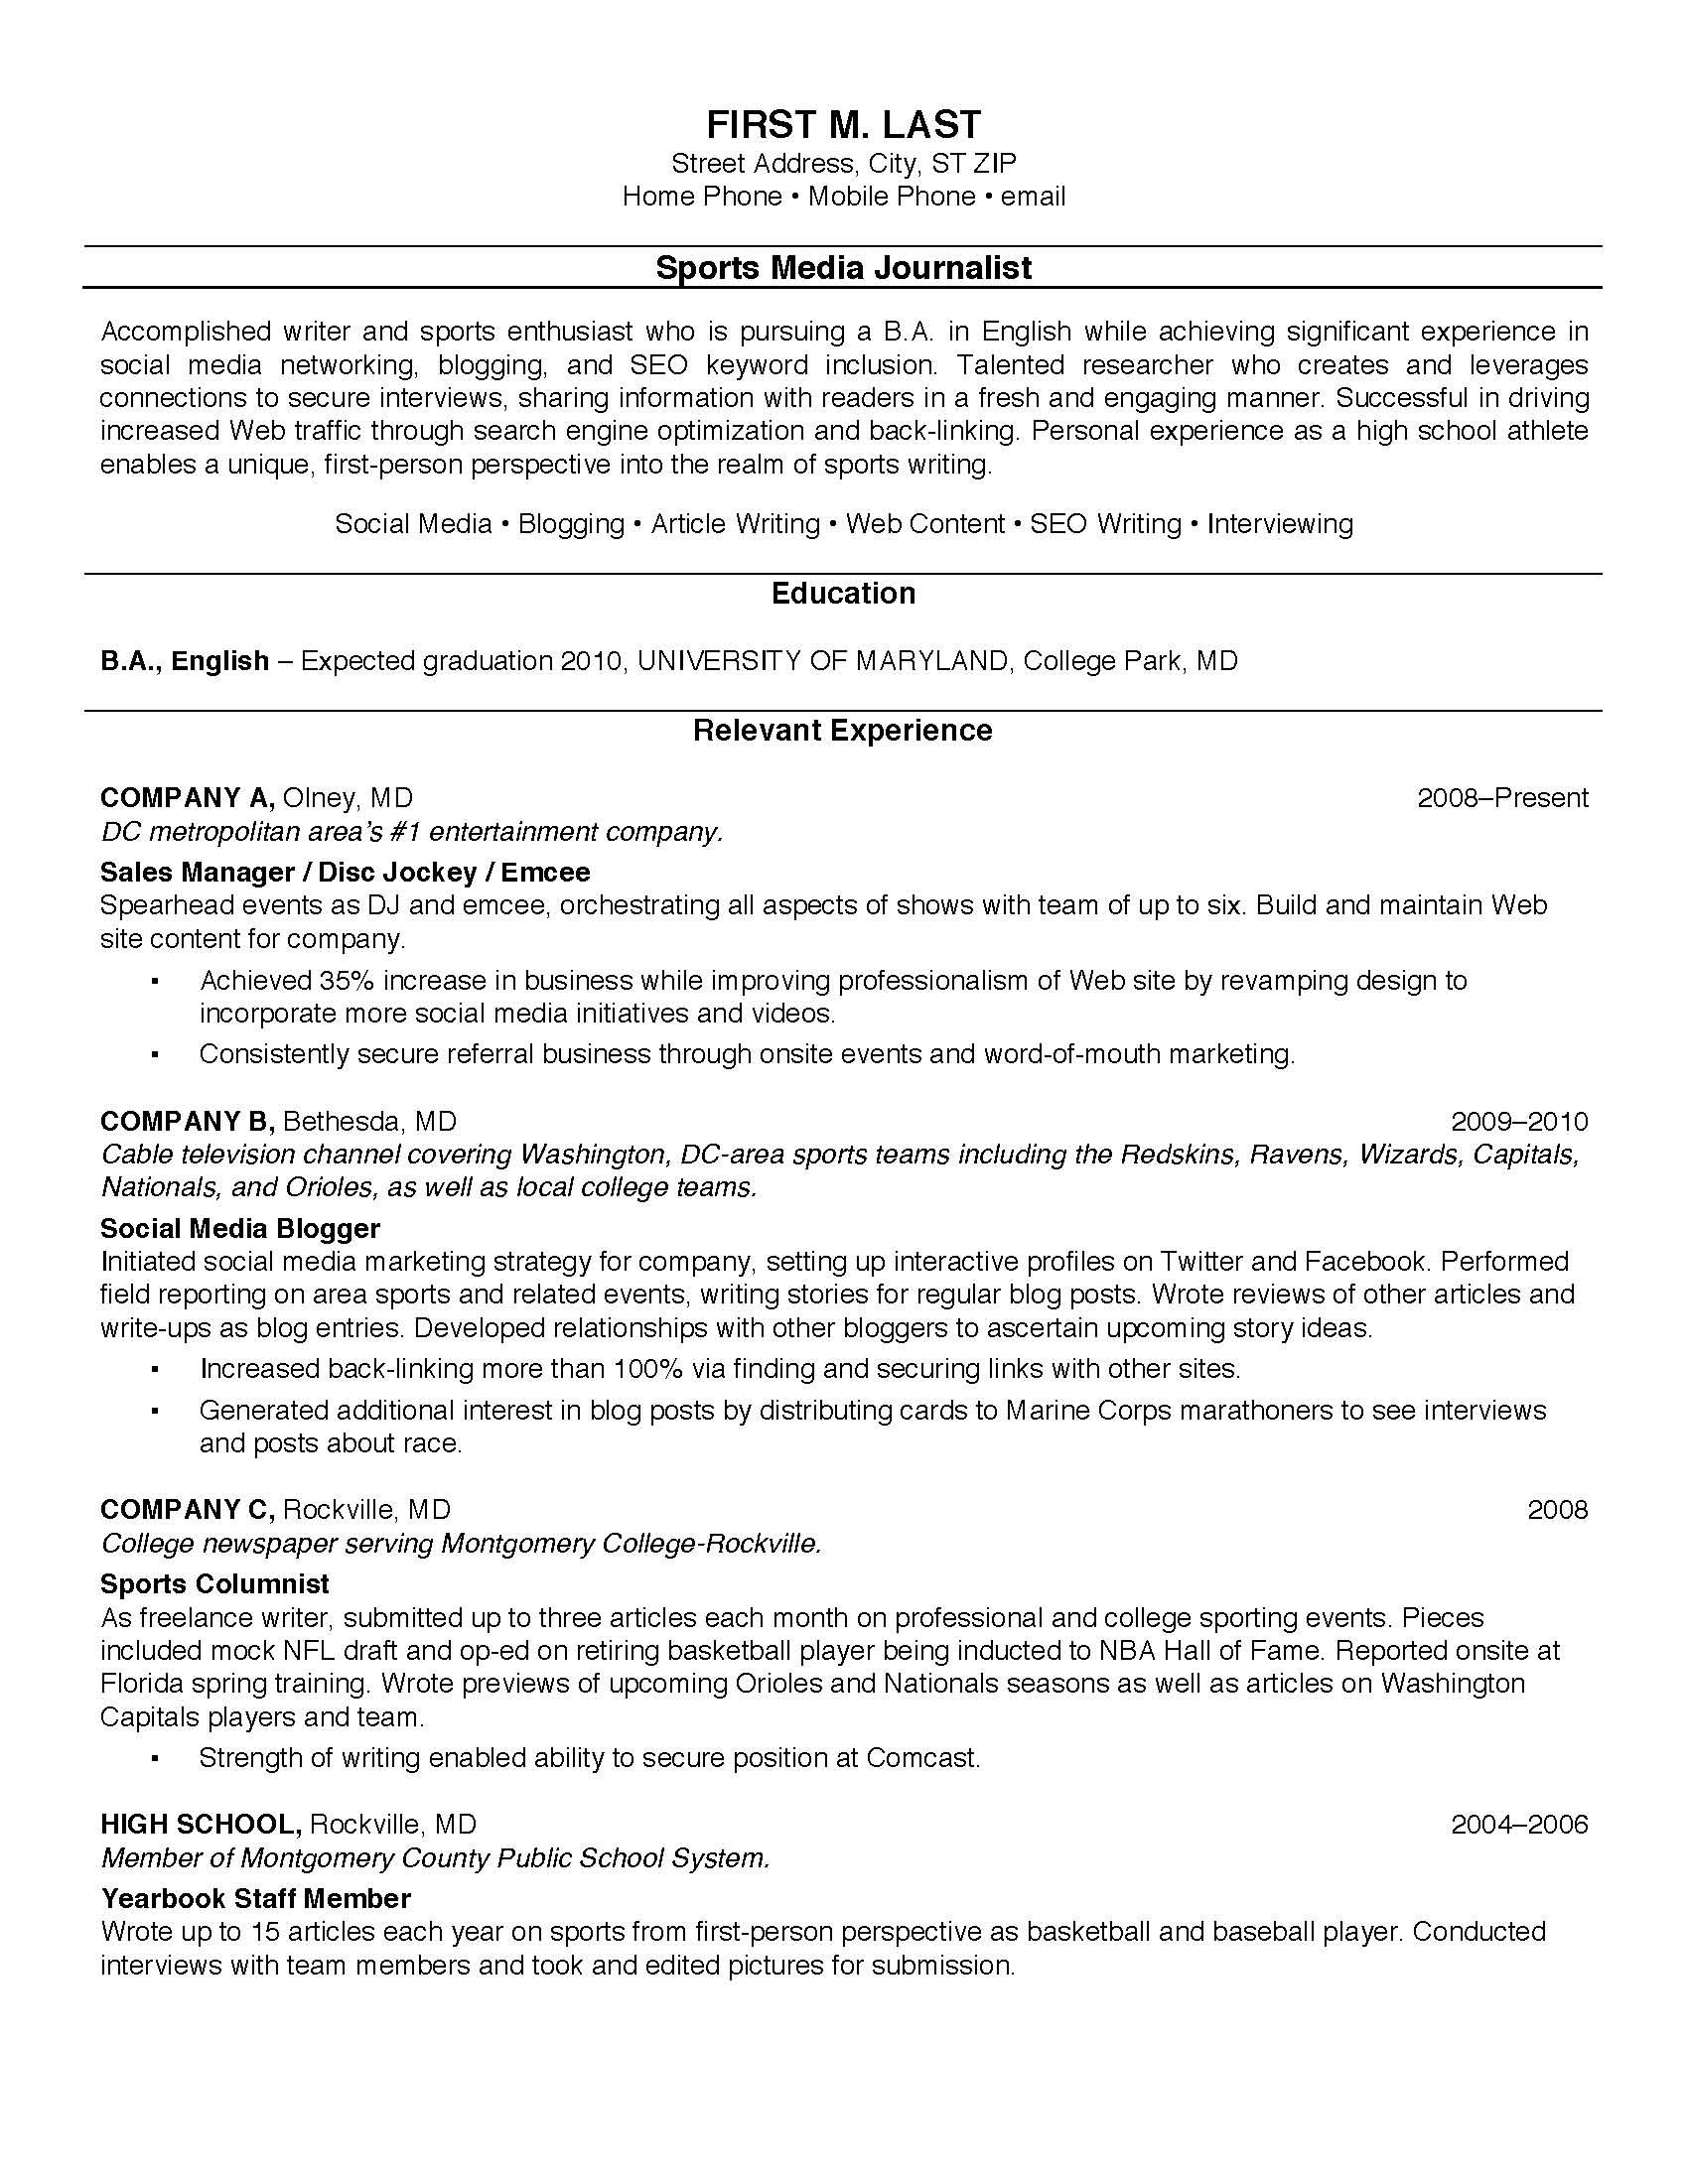 An Example Of A Resume Resume Format College Student 1 Resume Examples Pinterest